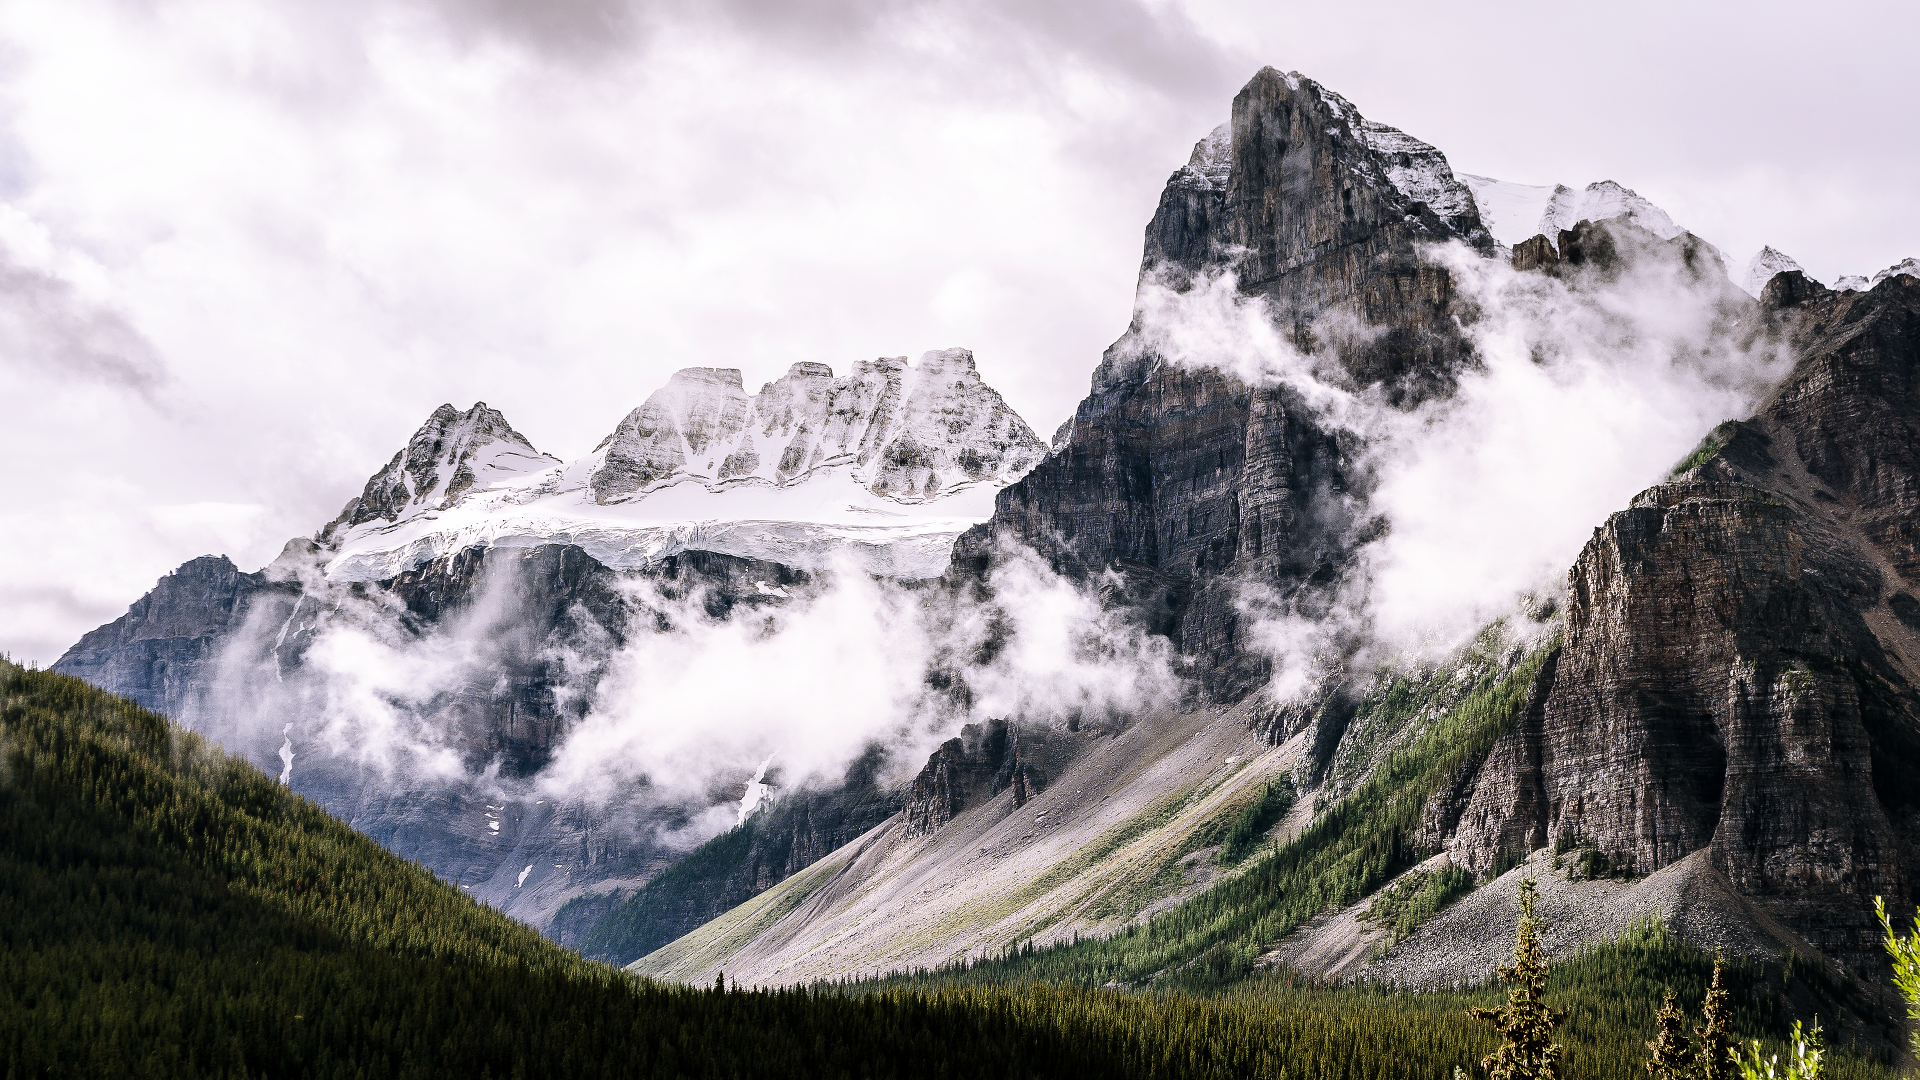 Great Wallpaper Mountain Art - mountains4  Graphic_74421.png